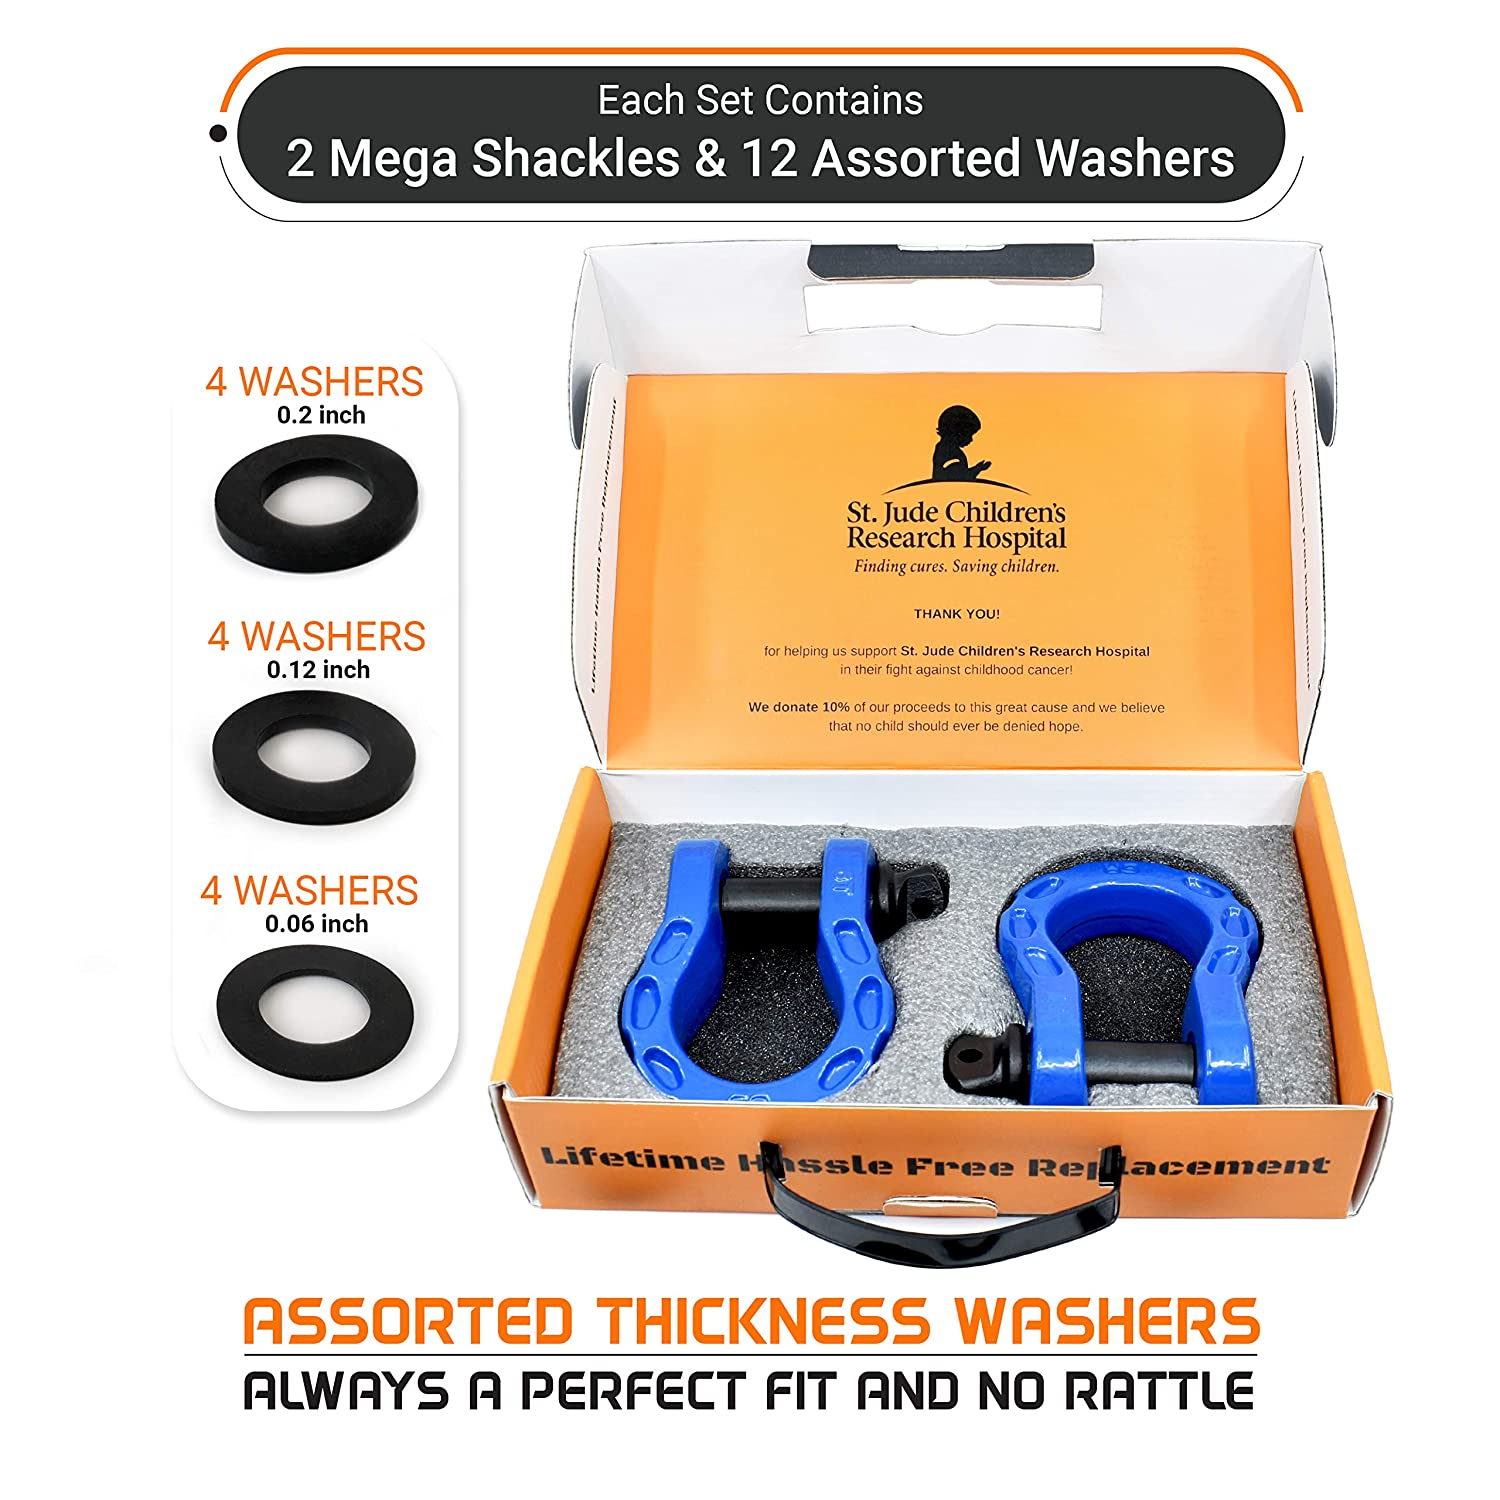 Tested Strength 3//4 Shackle 2PK 34 Ton GearAmerica Mega Duty D Ring Shackles 68,000 Lbs 7//8 Pin Washers Securely Connect Tow Strap Or Winch Rope to Jeep for Off-Road 4X4 Recovery Blue